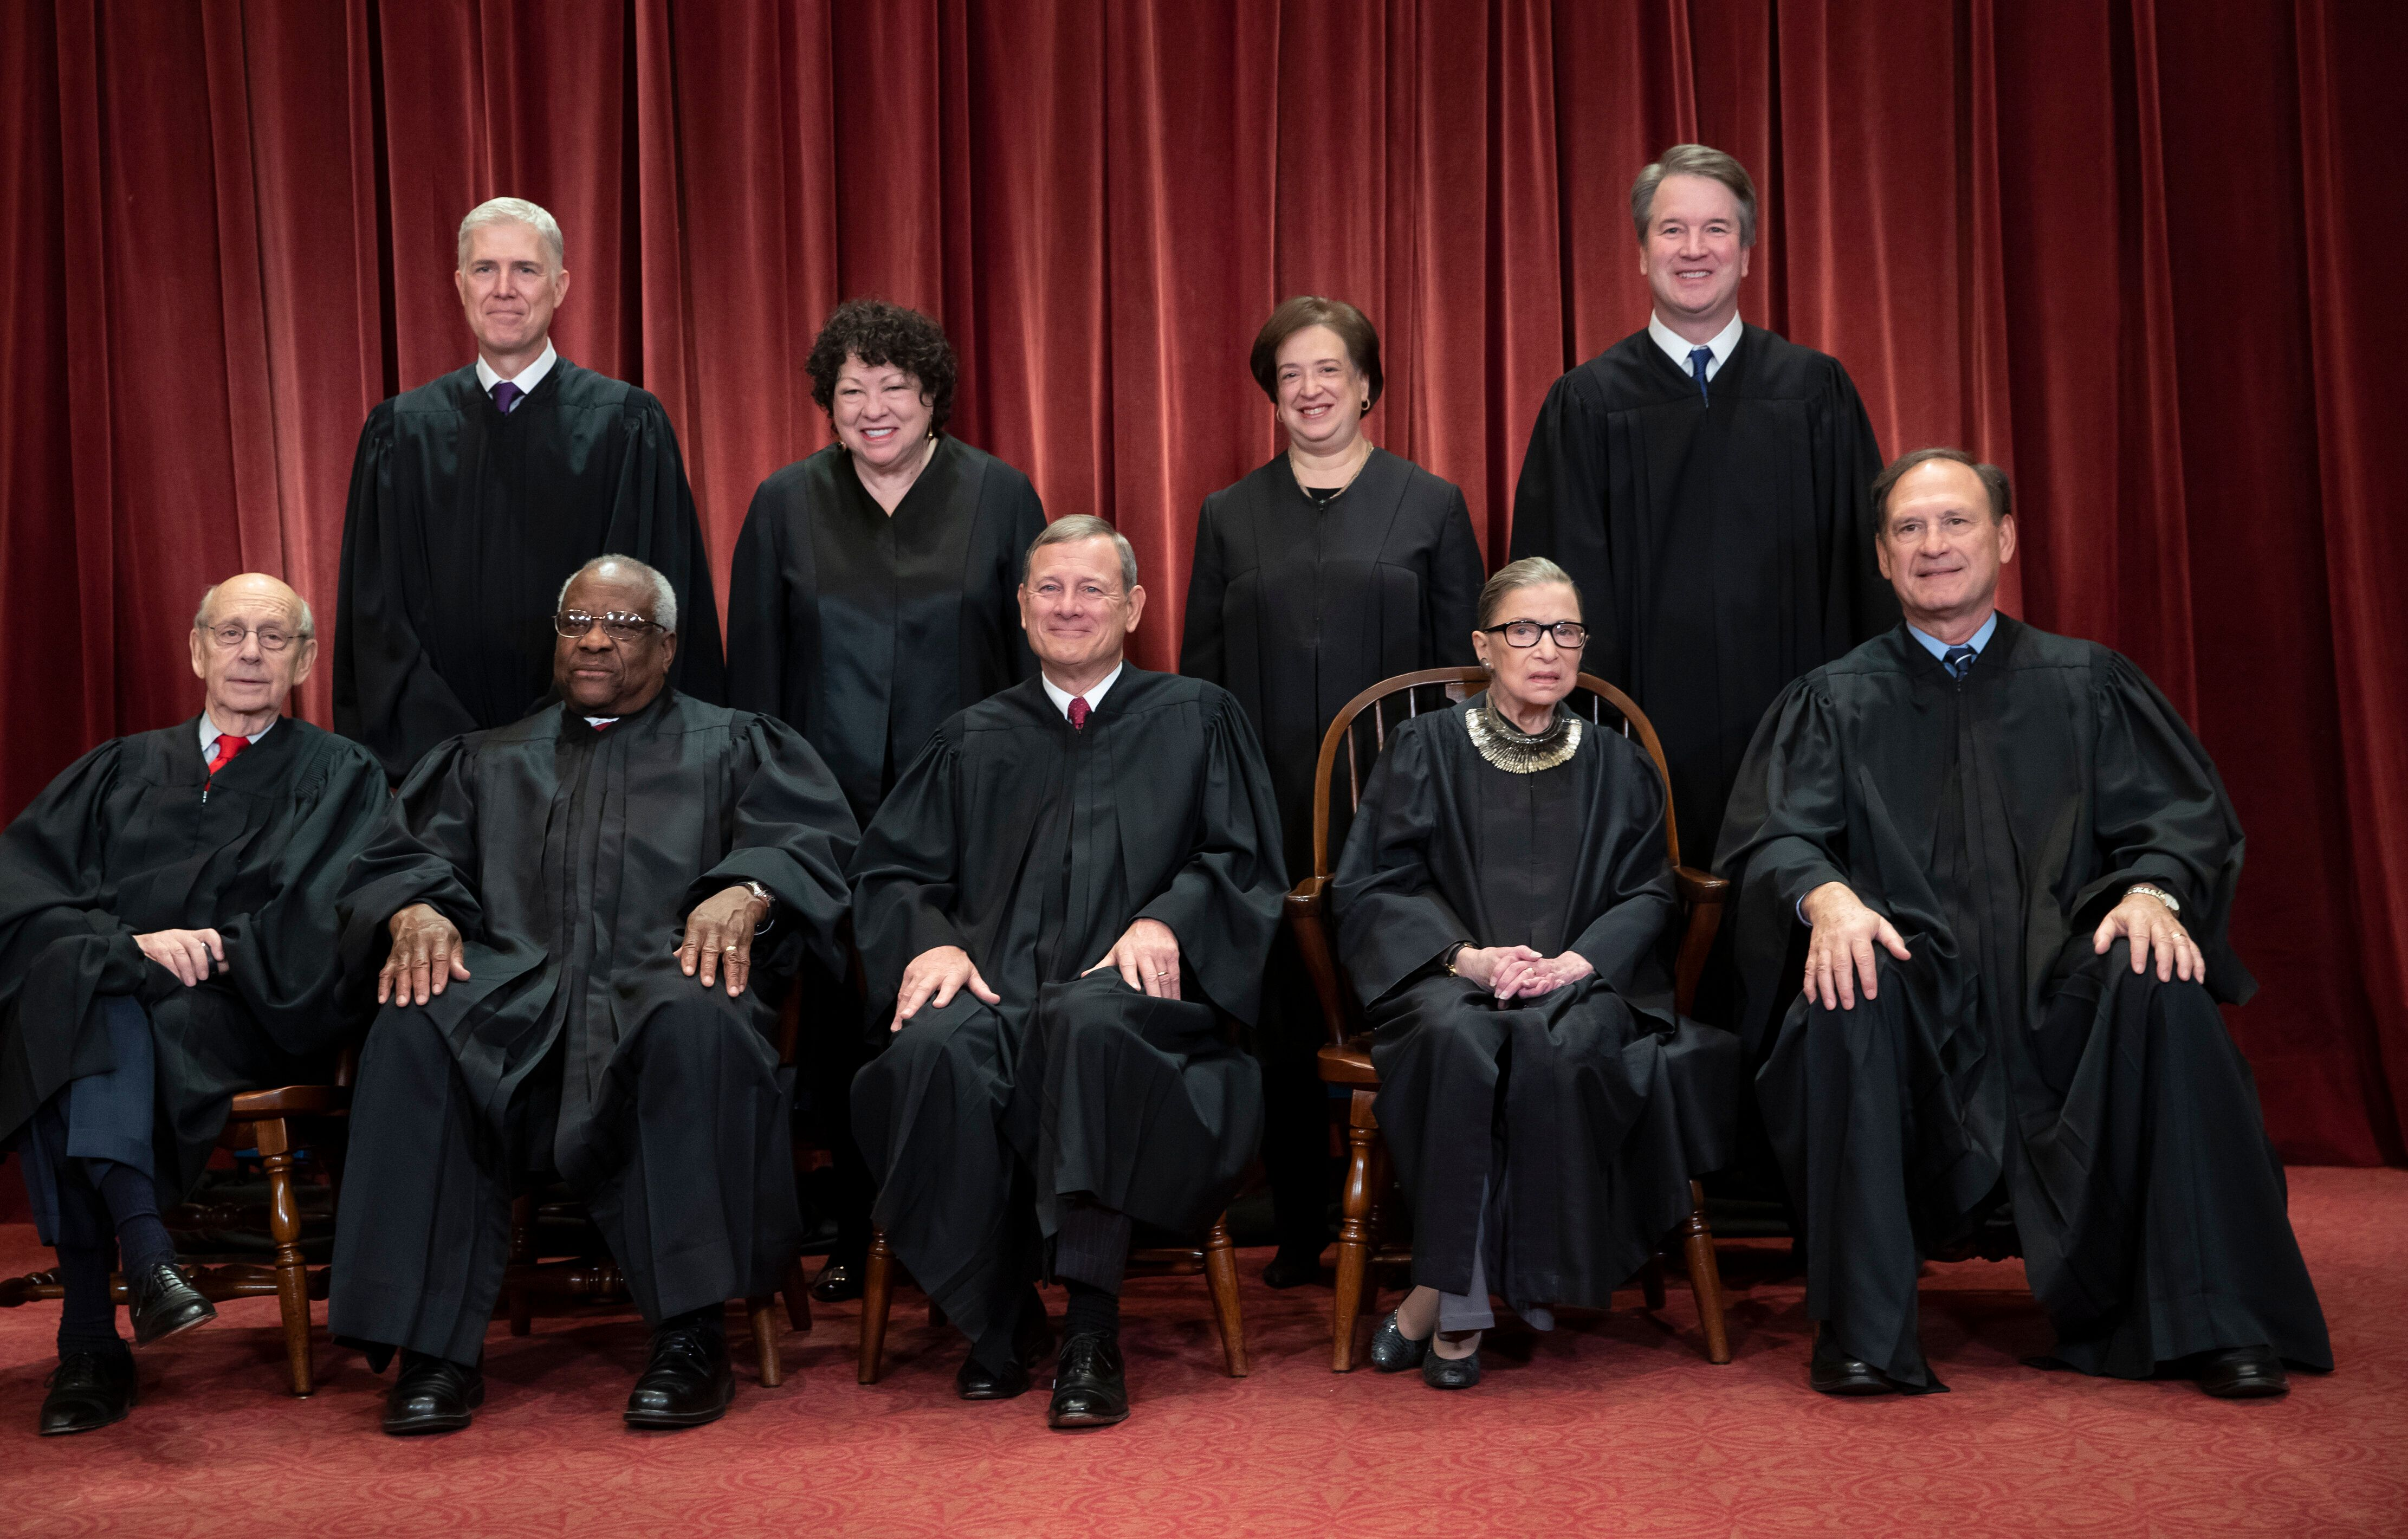 Conservative justices Neil Gorsuch (top row, far left) and Chief Justice John Roberts (bottom row, center) joined the court's